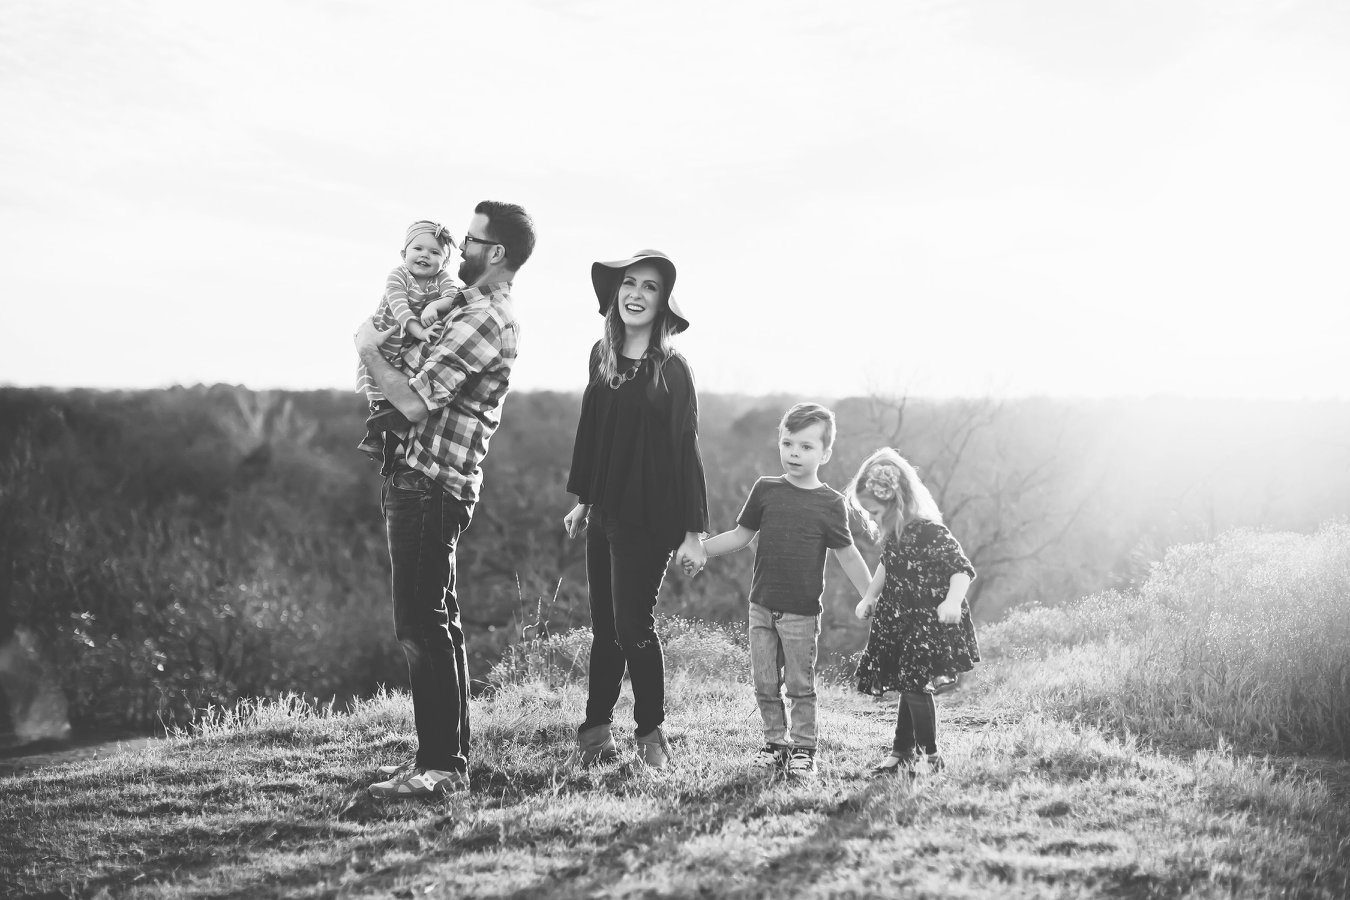 Writer - Rachael ThomasWorship leader, songwriter, coffee enthusiast and wife to Jason and their 3 sweet nuggets...Camden, Harper and Raleigh.